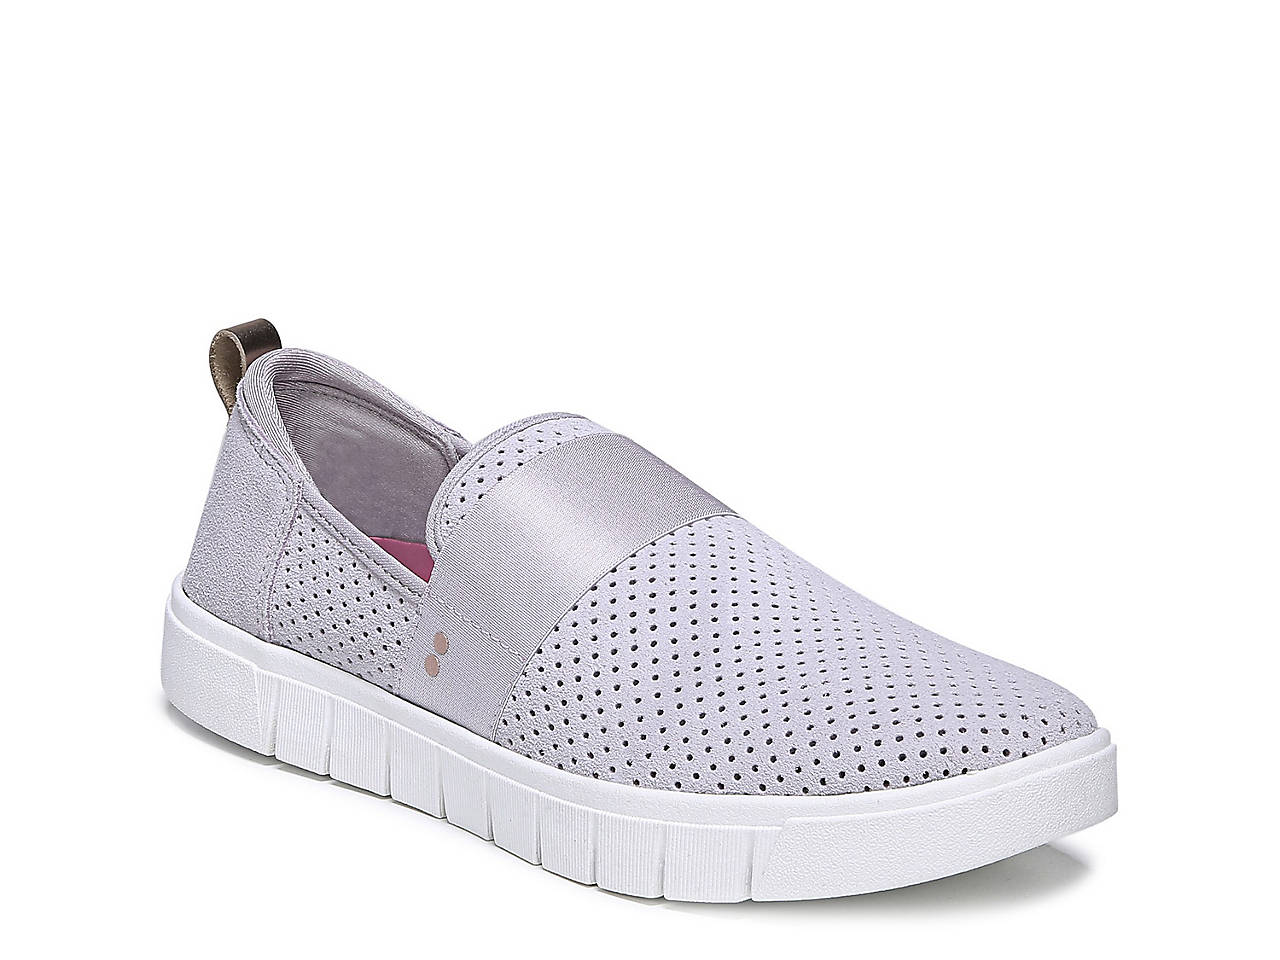 5629788e6 Ryka Haze Slip-On Sneaker Women's Shoes | DSW